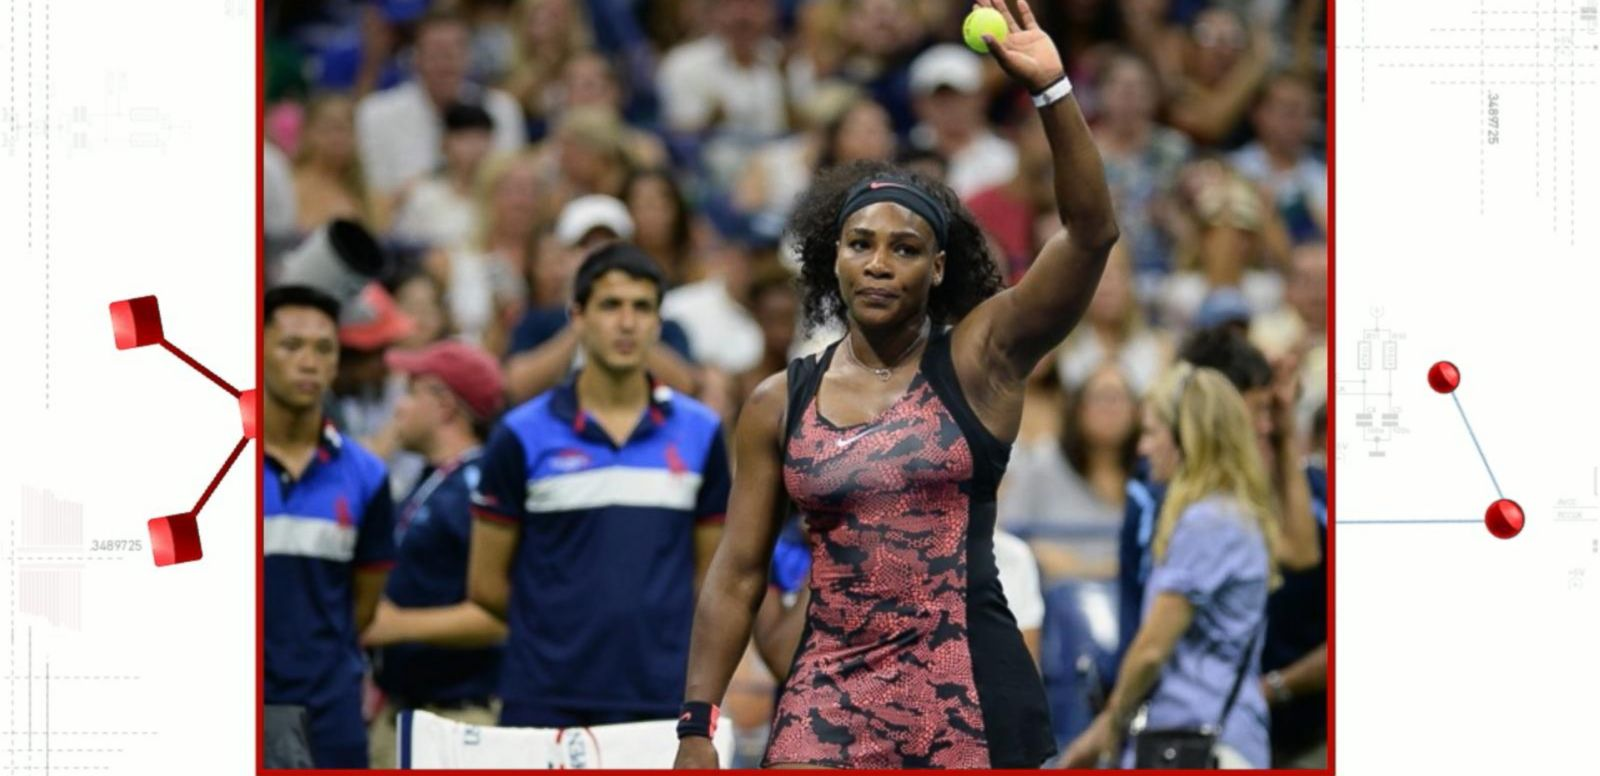 VIDEO: Star-Studded Affair at the U.S Open's Opening Ceremony